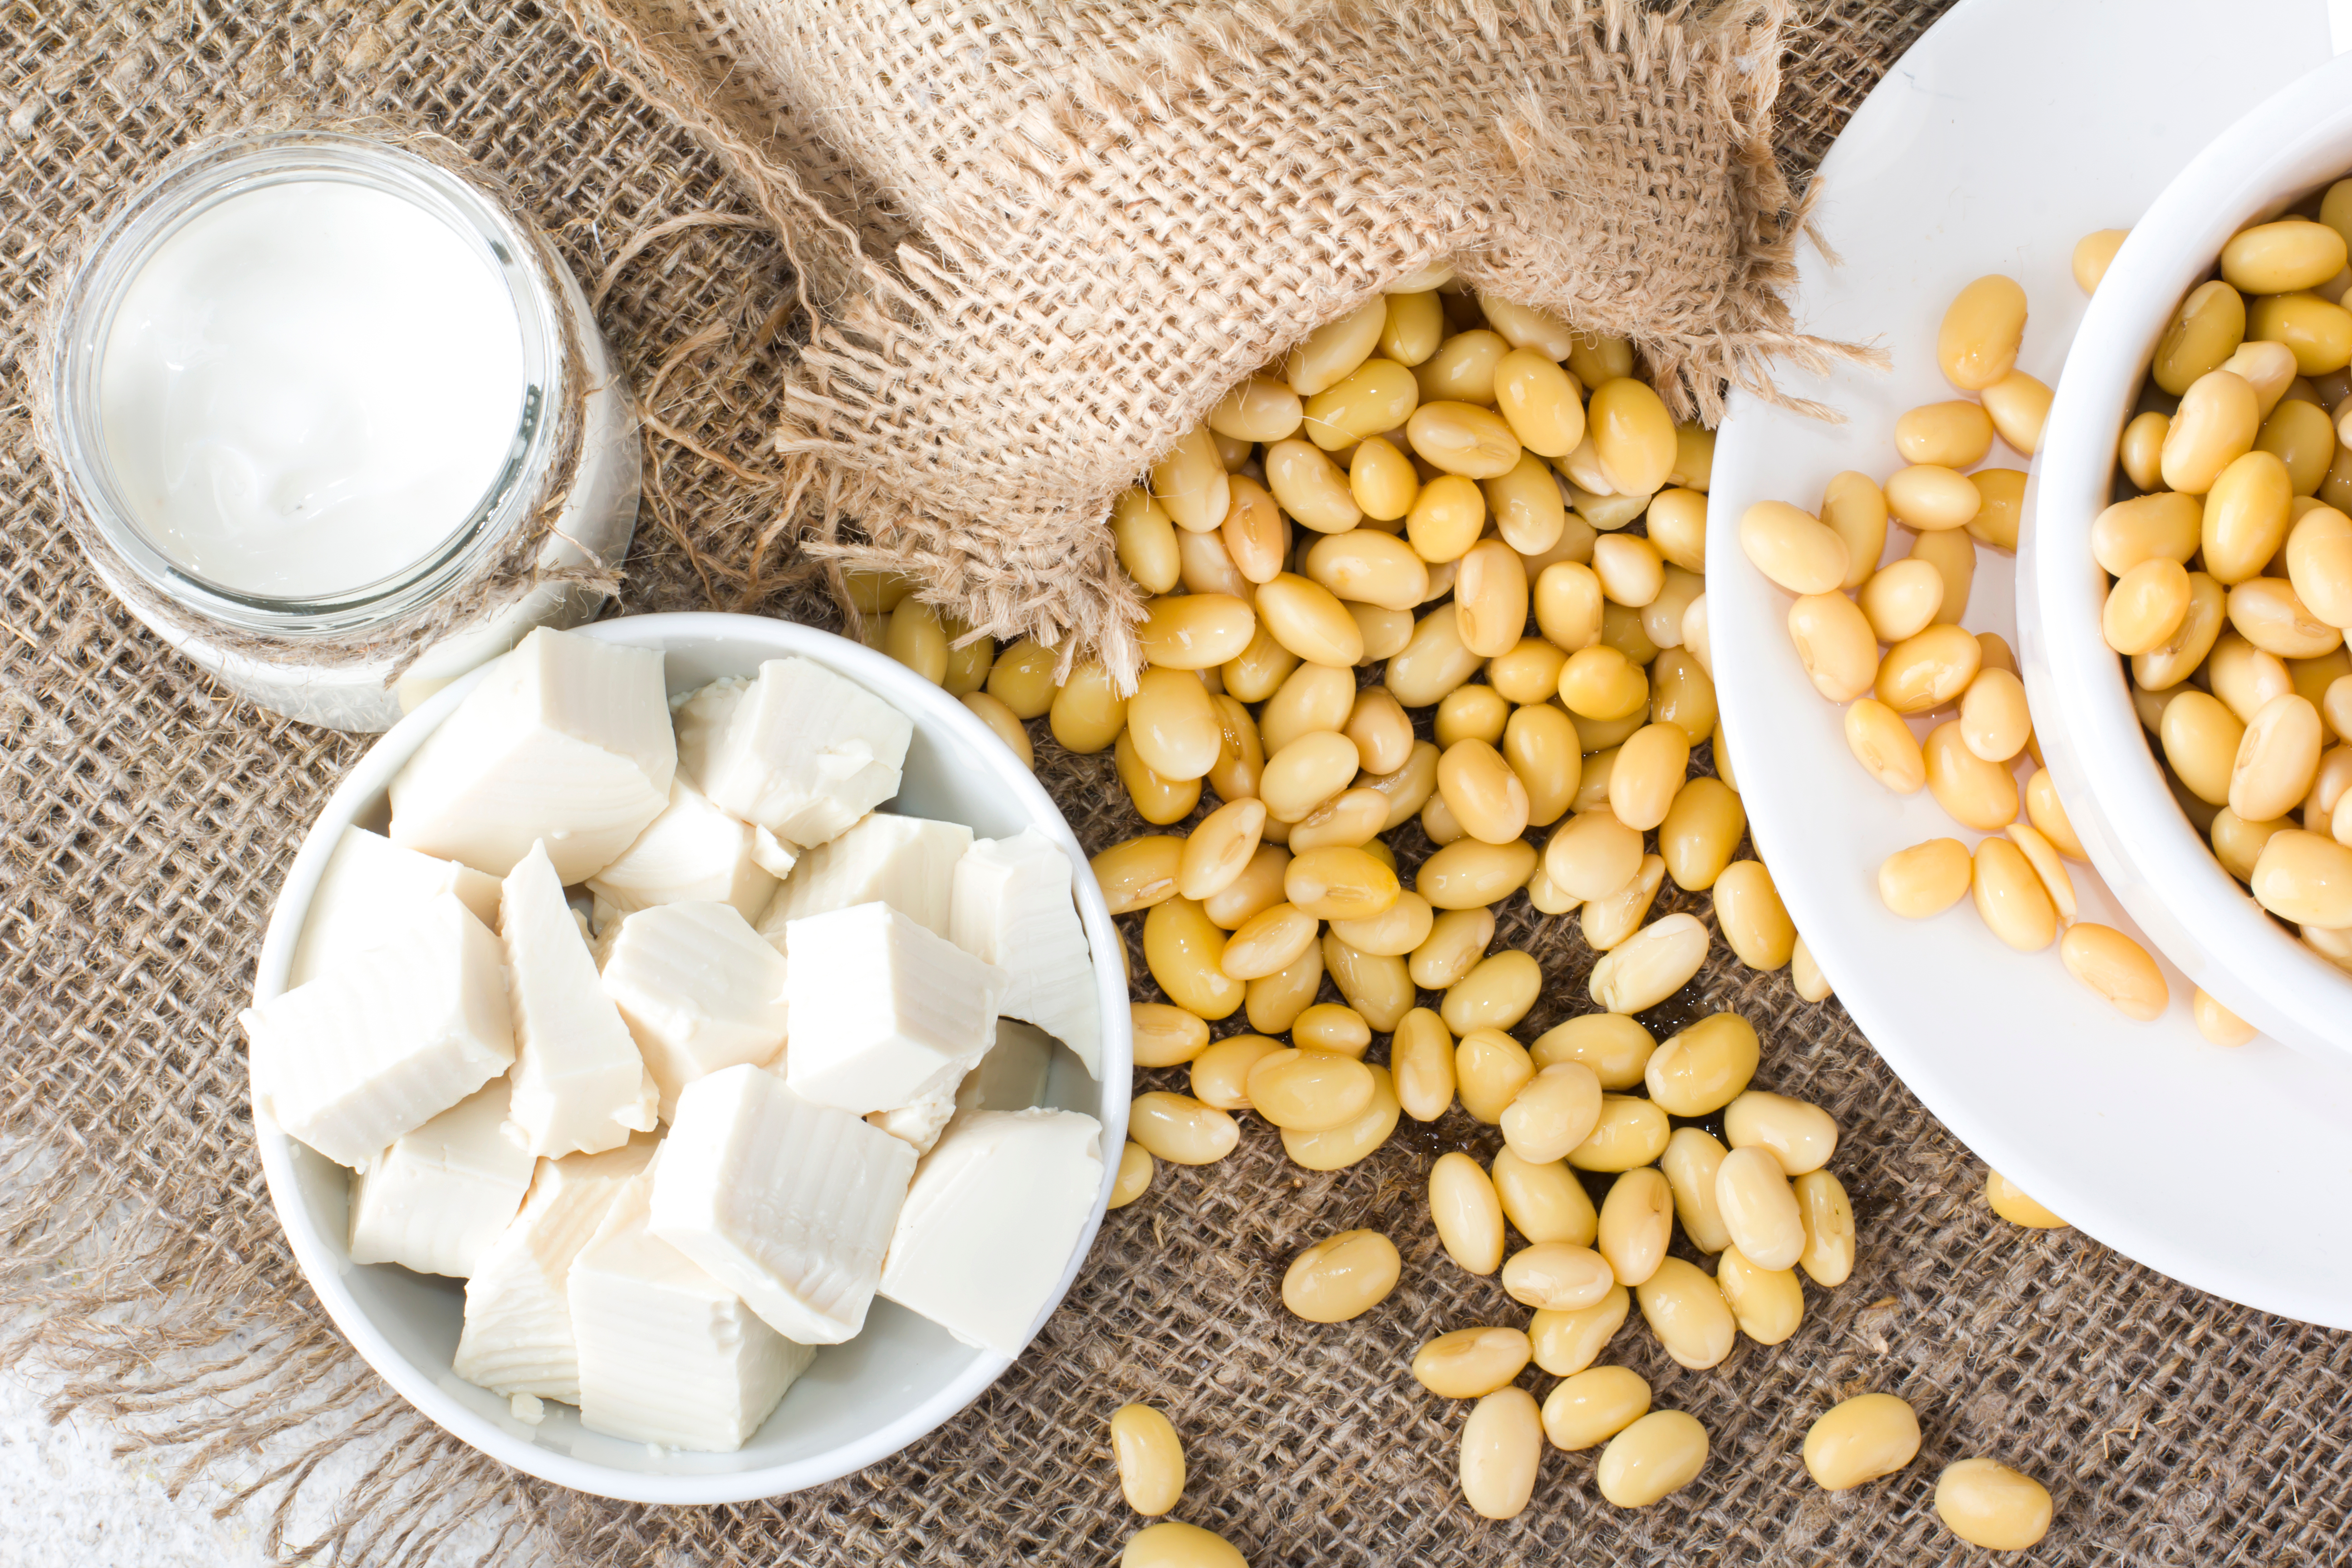 Soybeans, soy milk, and tofu